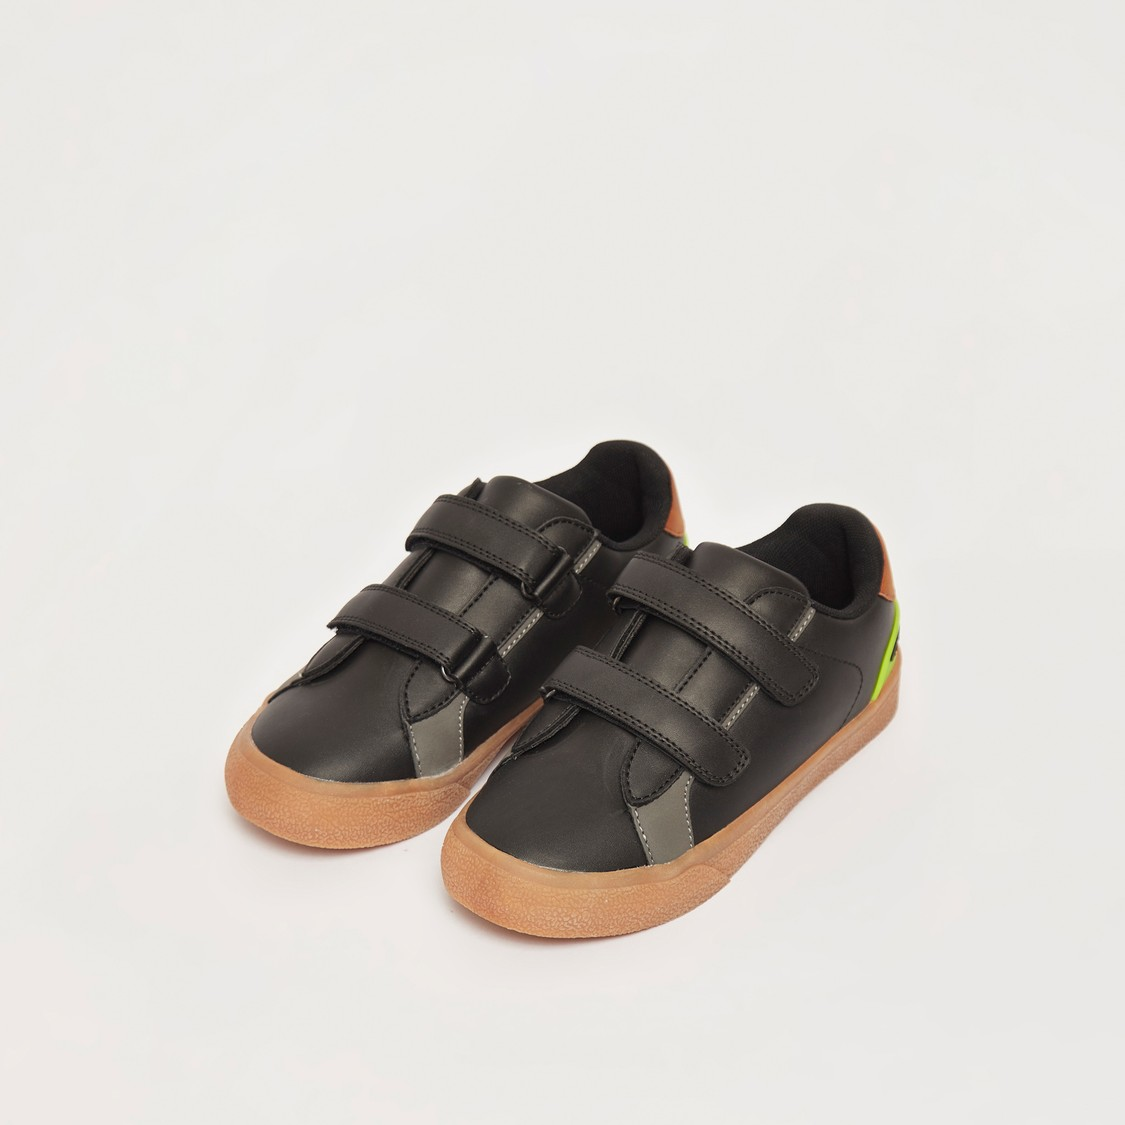 Solid Shoes with Hook and Loop Closure